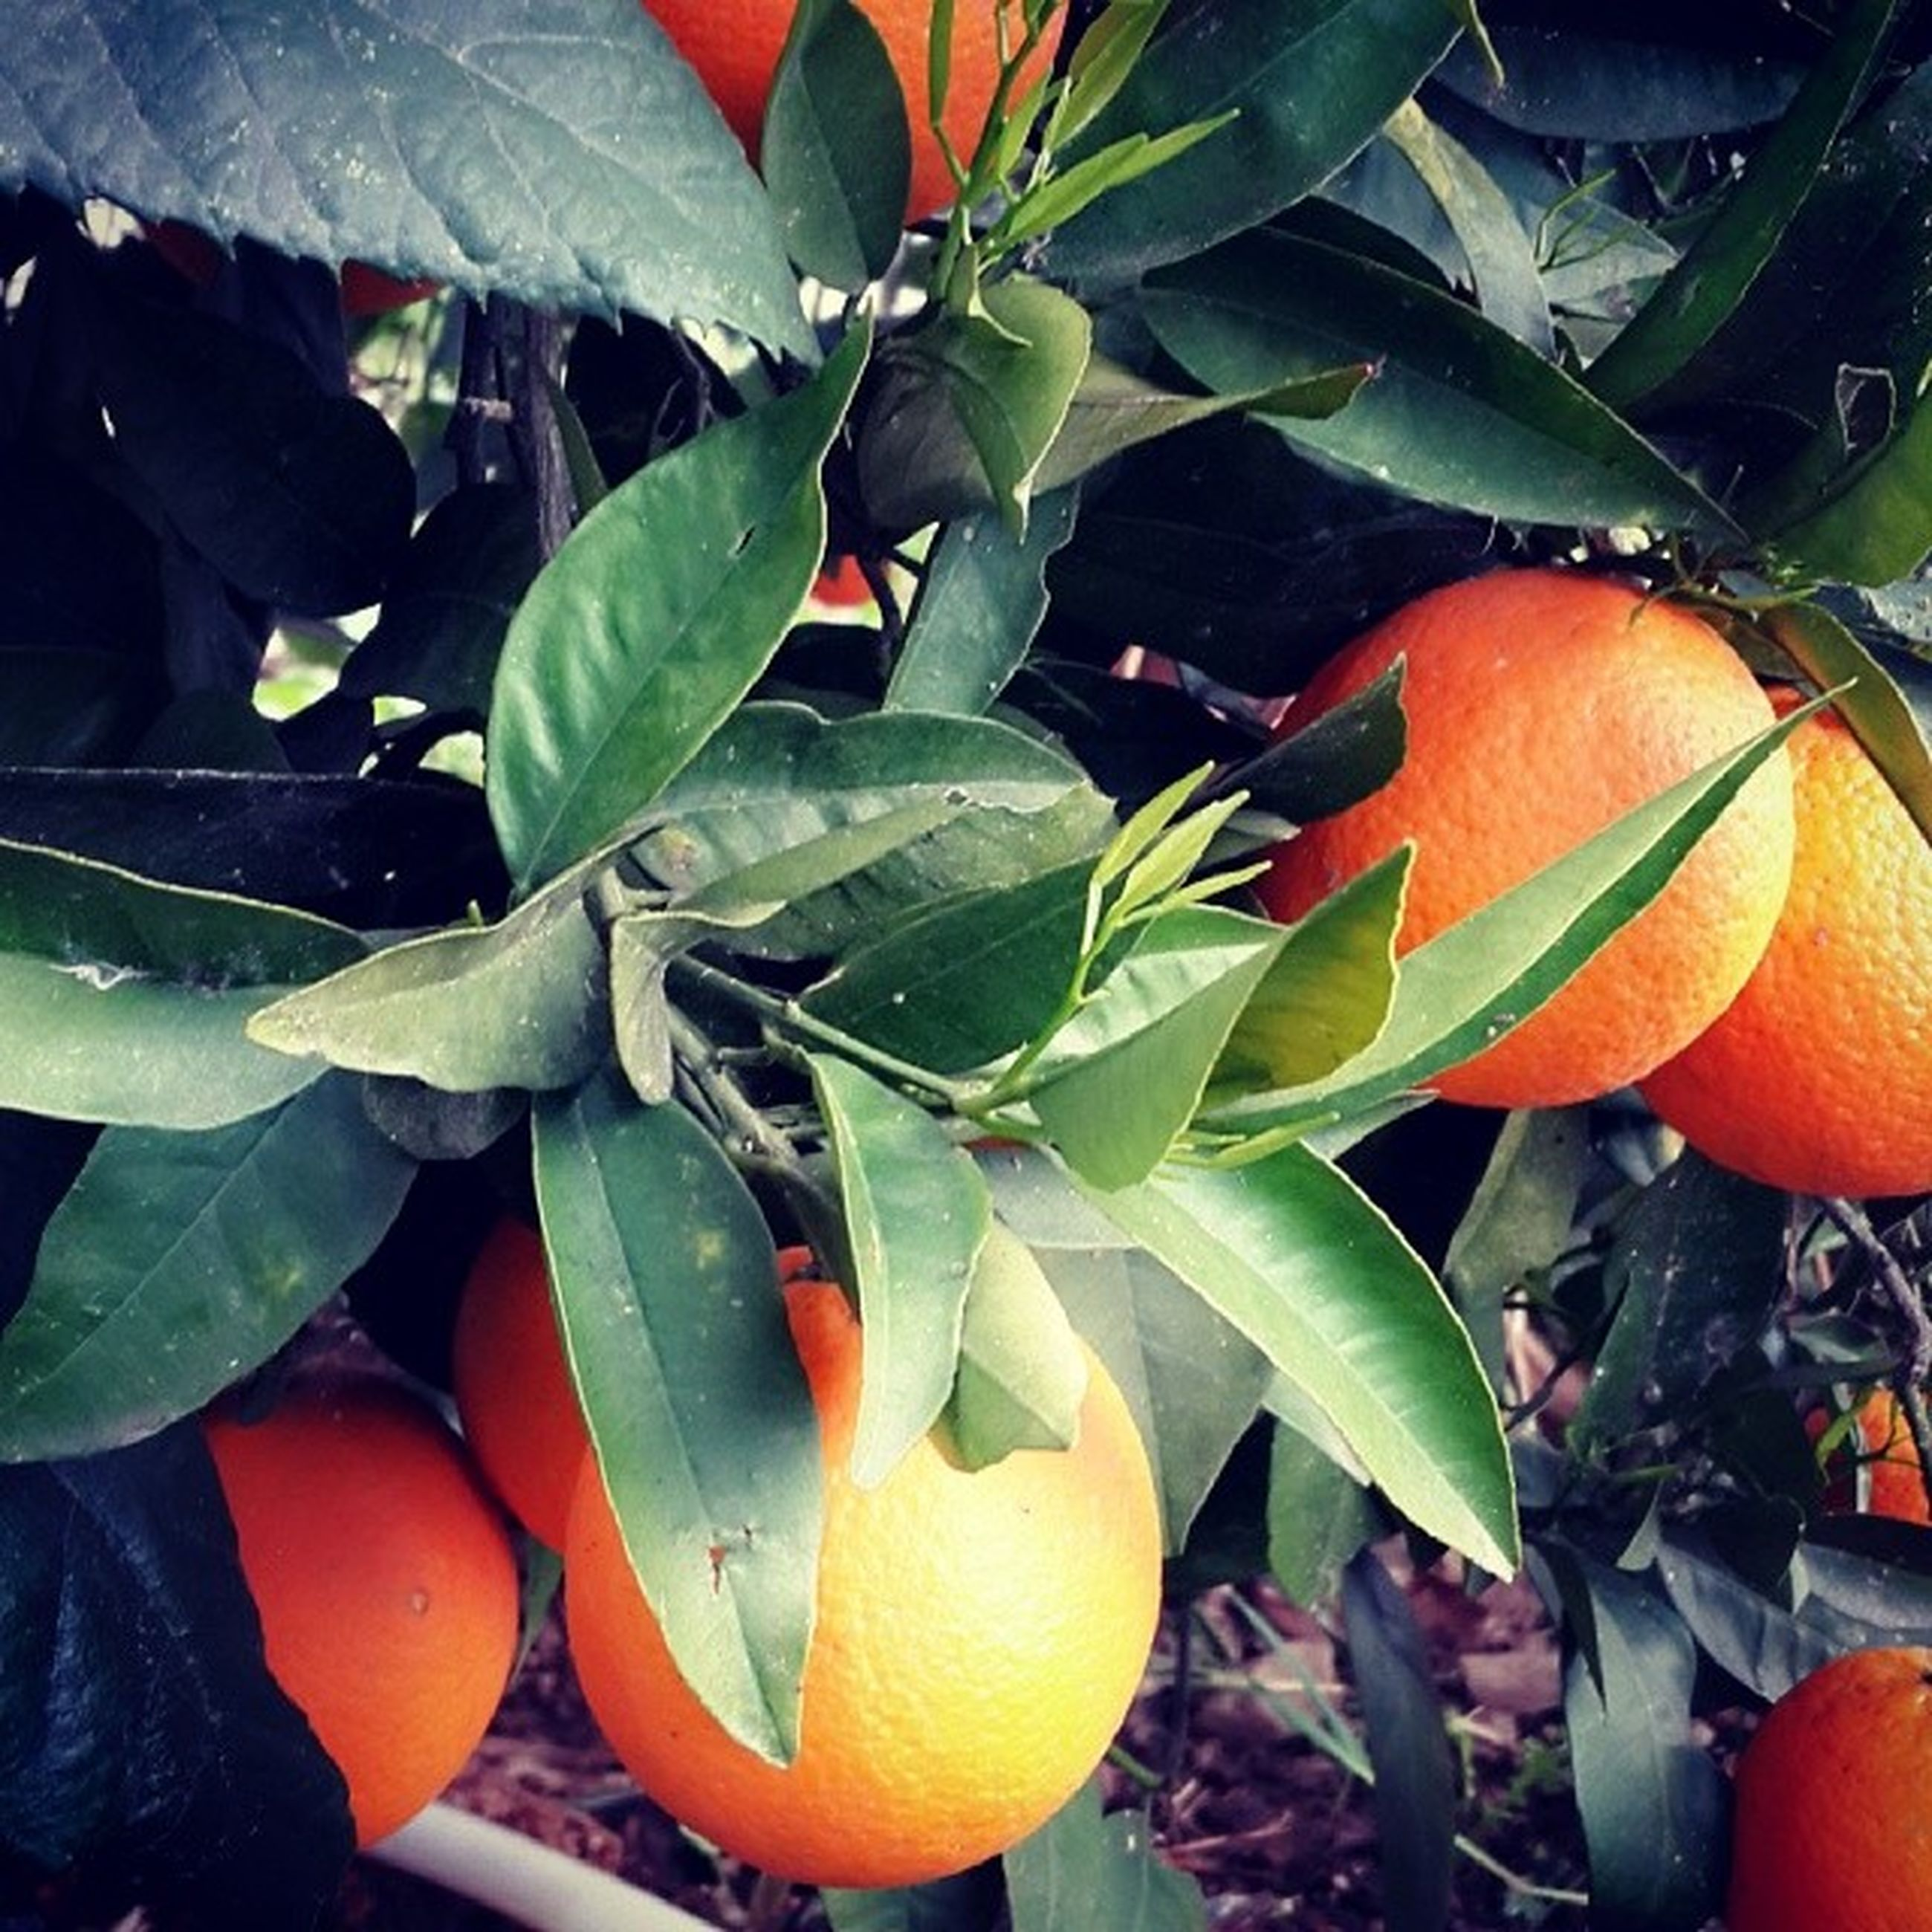 leaf, orange color, growth, freshness, plant, nature, close-up, beauty in nature, food and drink, sunlight, fruit, green color, orange, no people, tree, outdoors, day, red, yellow, focus on foreground